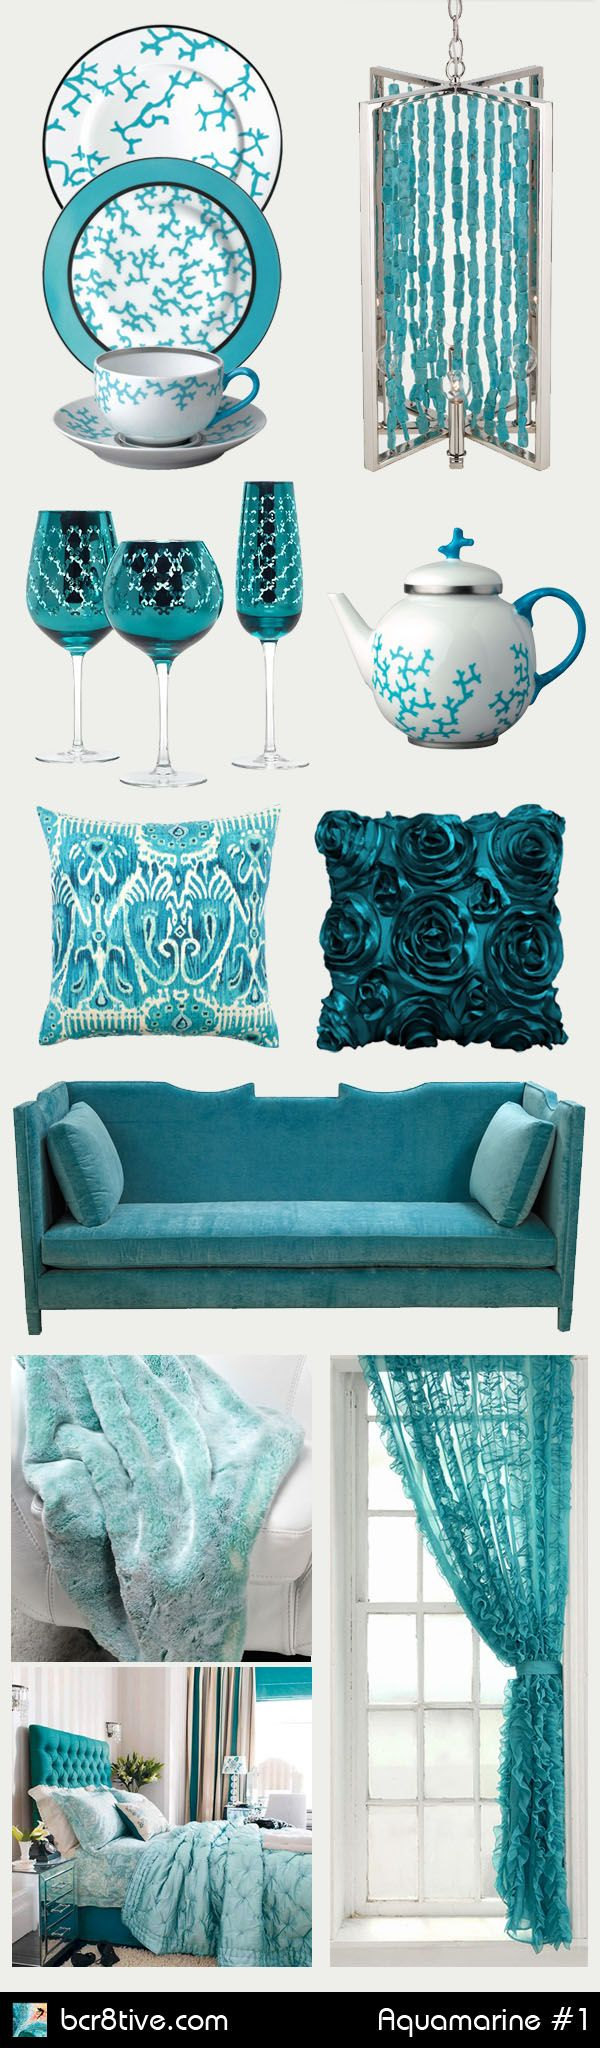 Home Decorating with Aquamarine & Turquoise